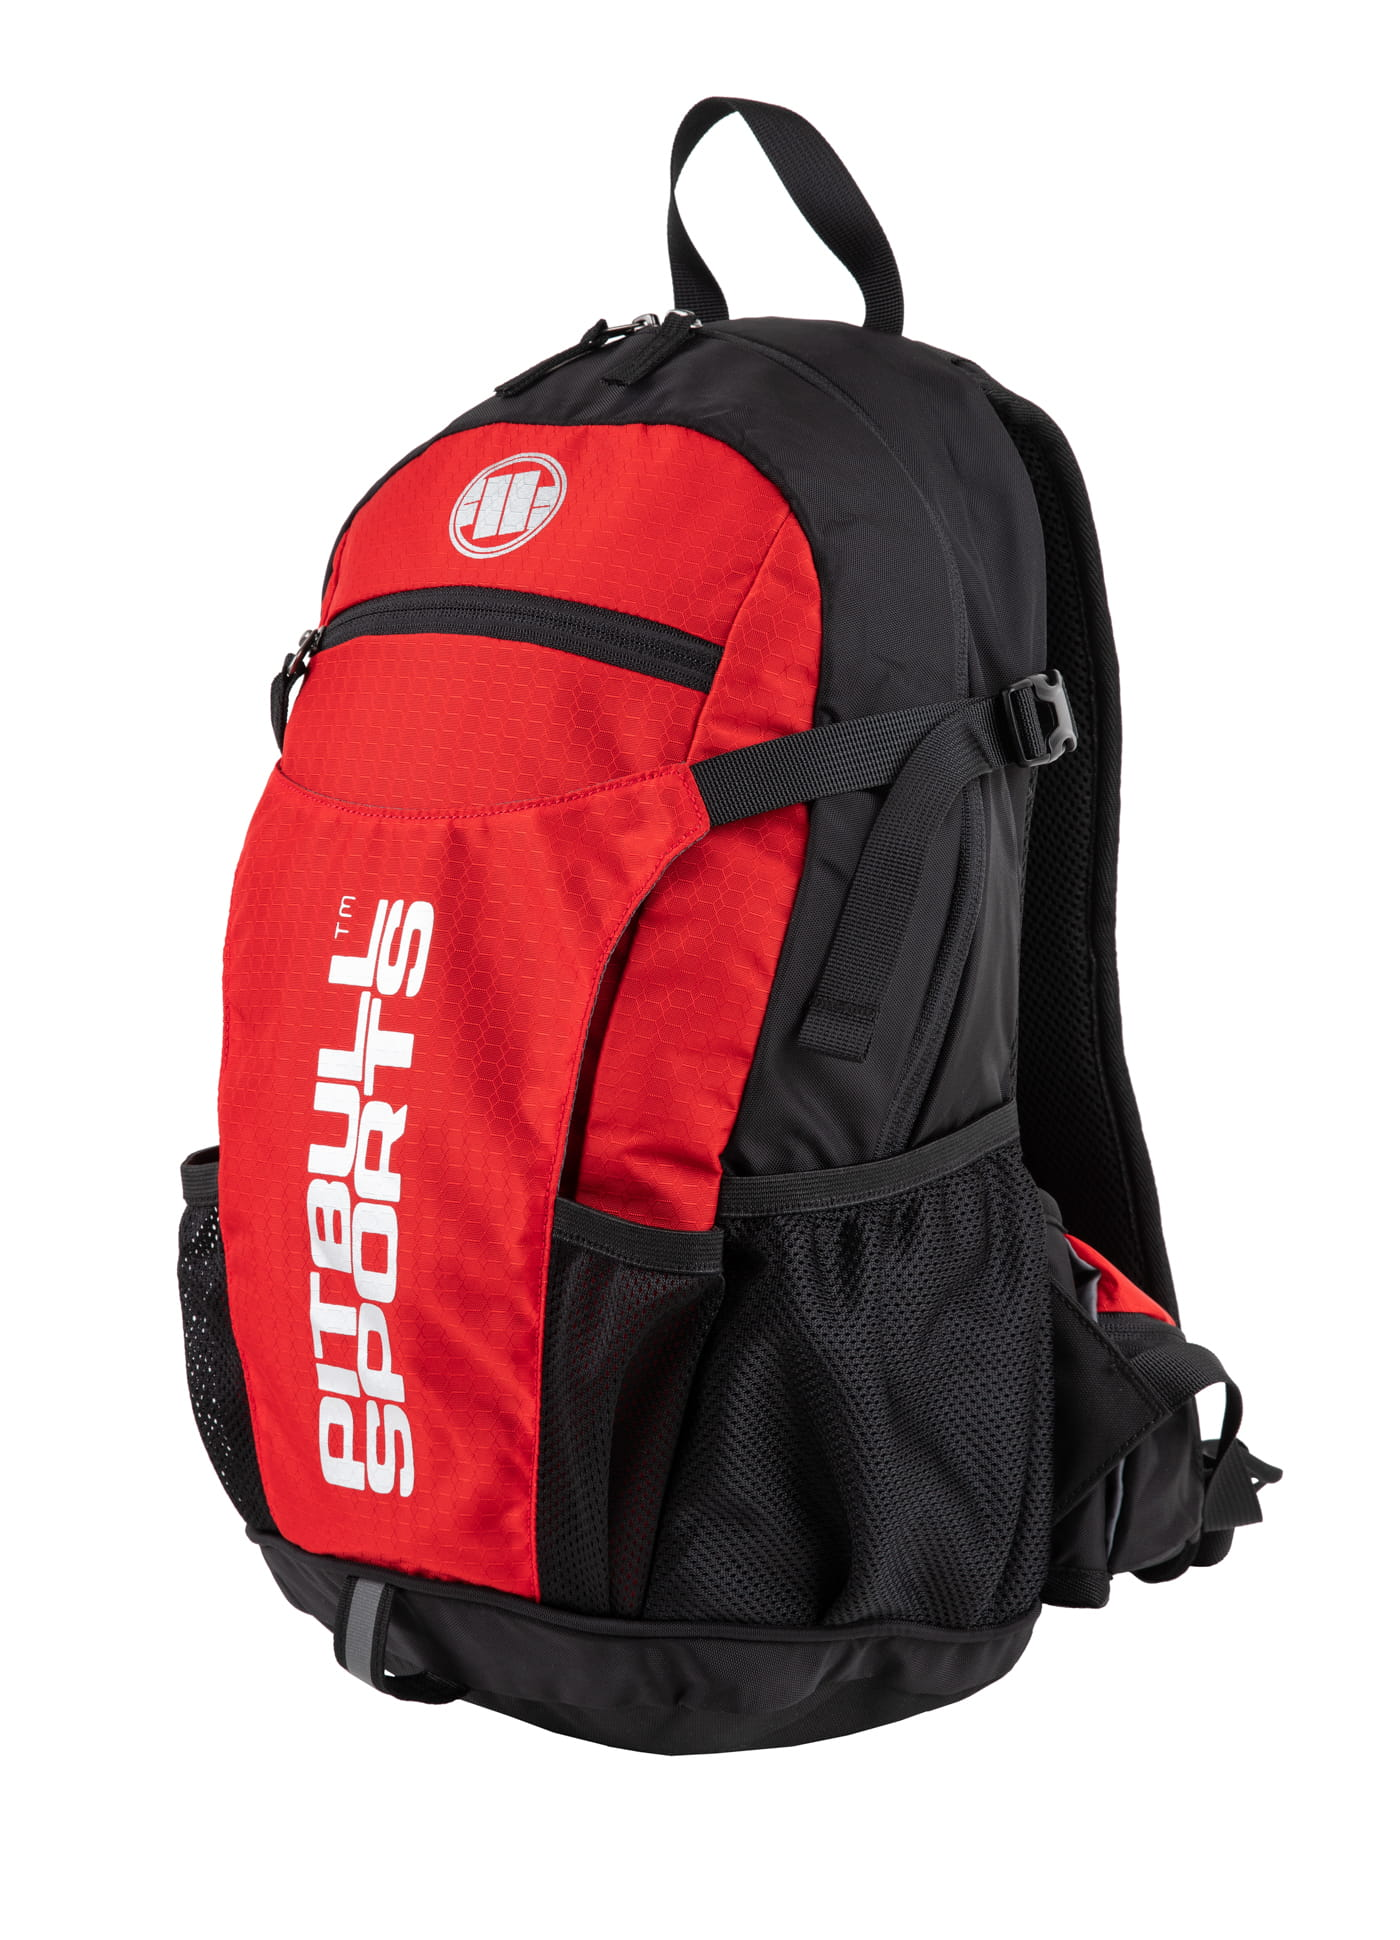 9192019045 Bike Backpack Pitbull Sports Black Red 01 small.jpg